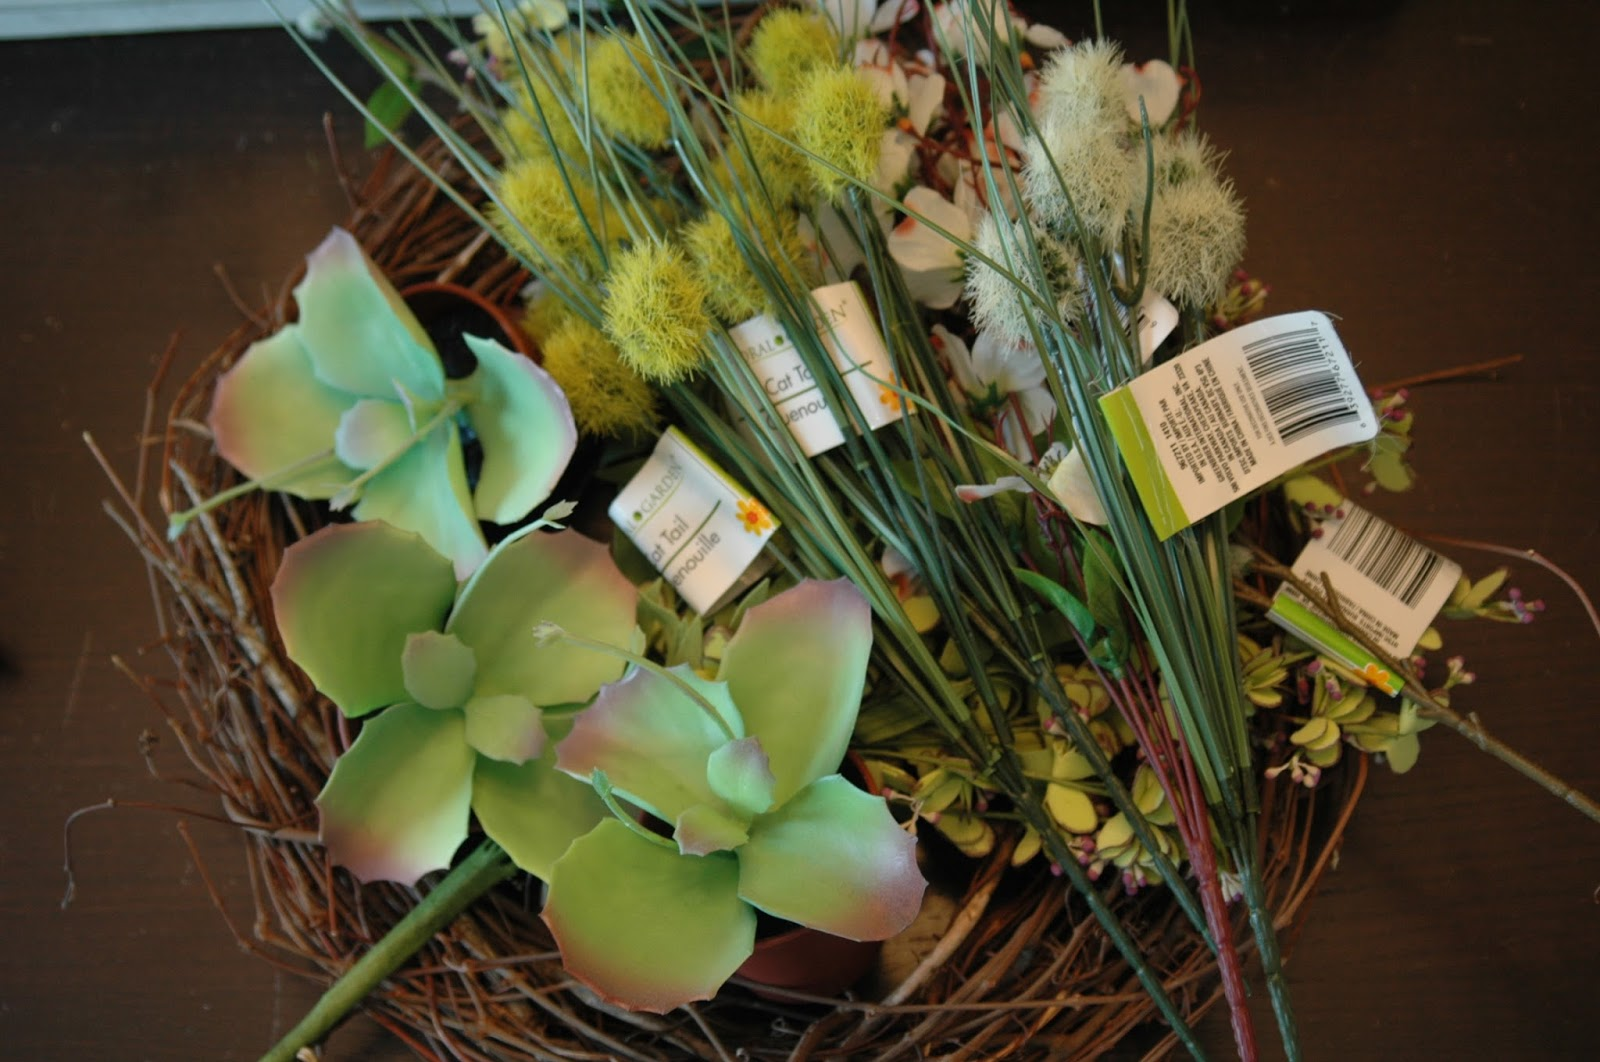 Dollar Store flower supplies